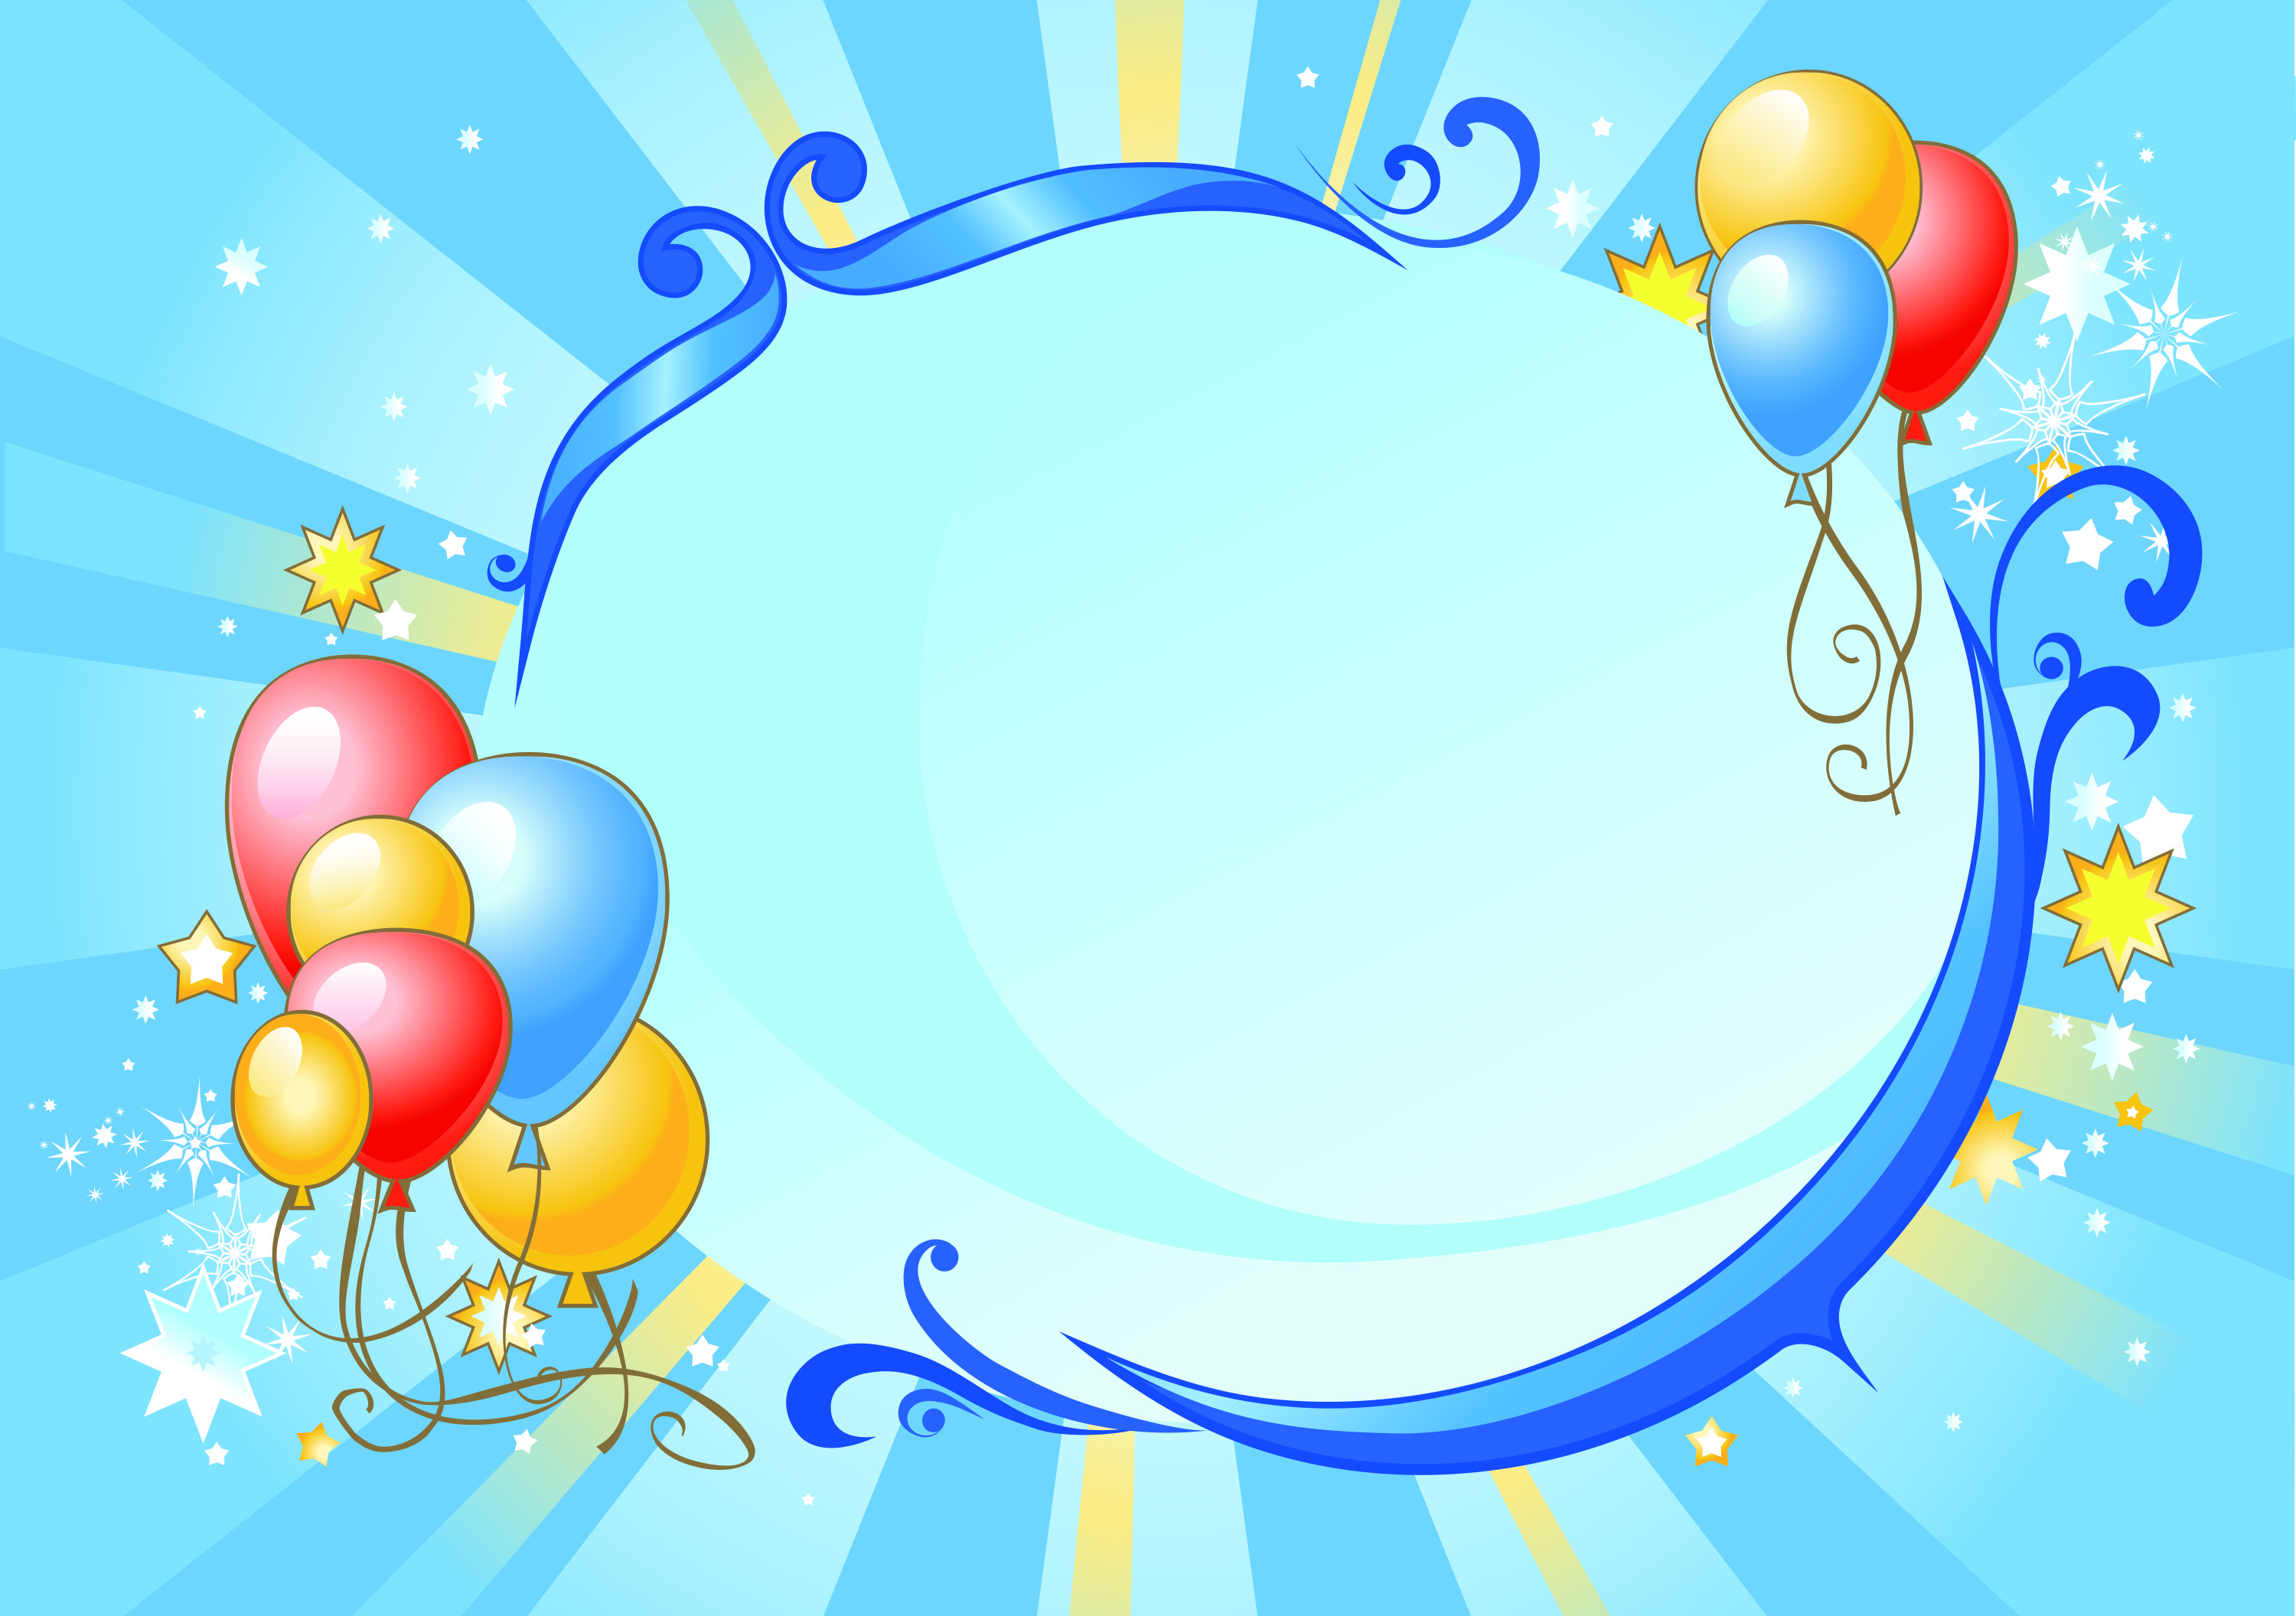 joyous celebration balloon frame background material